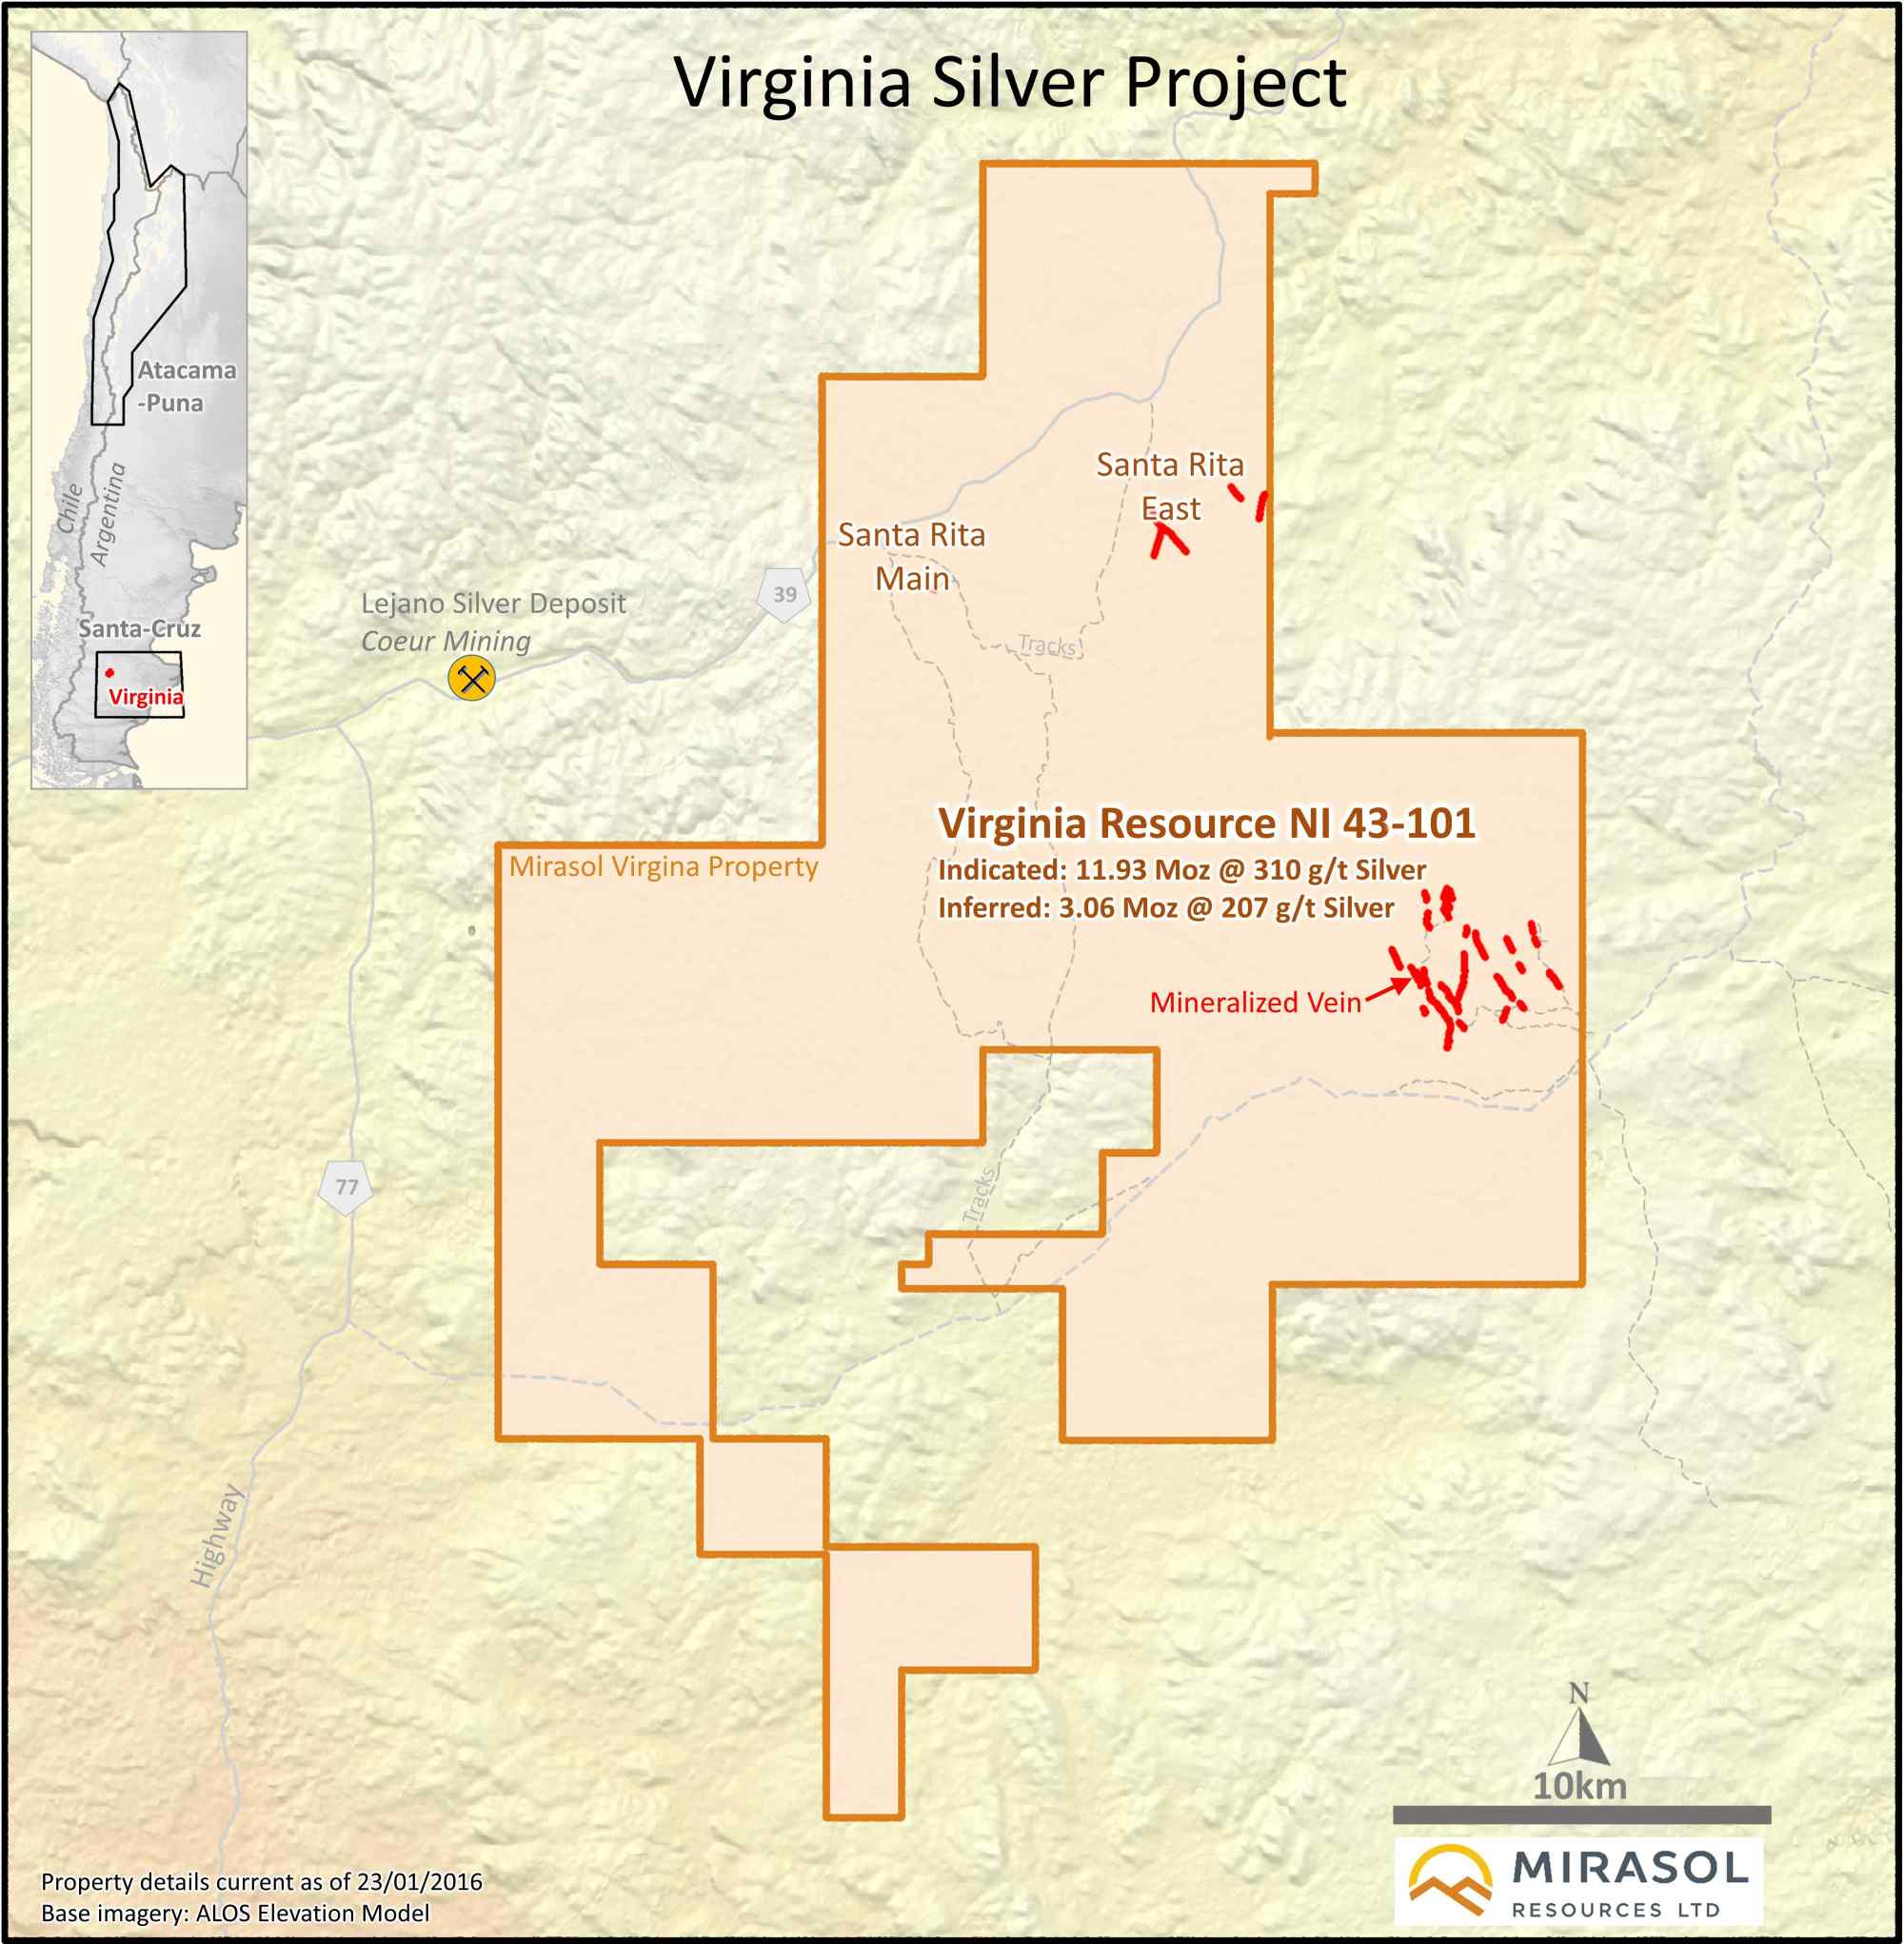 hight resolution of  for as yet un recognized shallow soil covered high grade mineralization that would expand the district scale potential of the virginia silver project